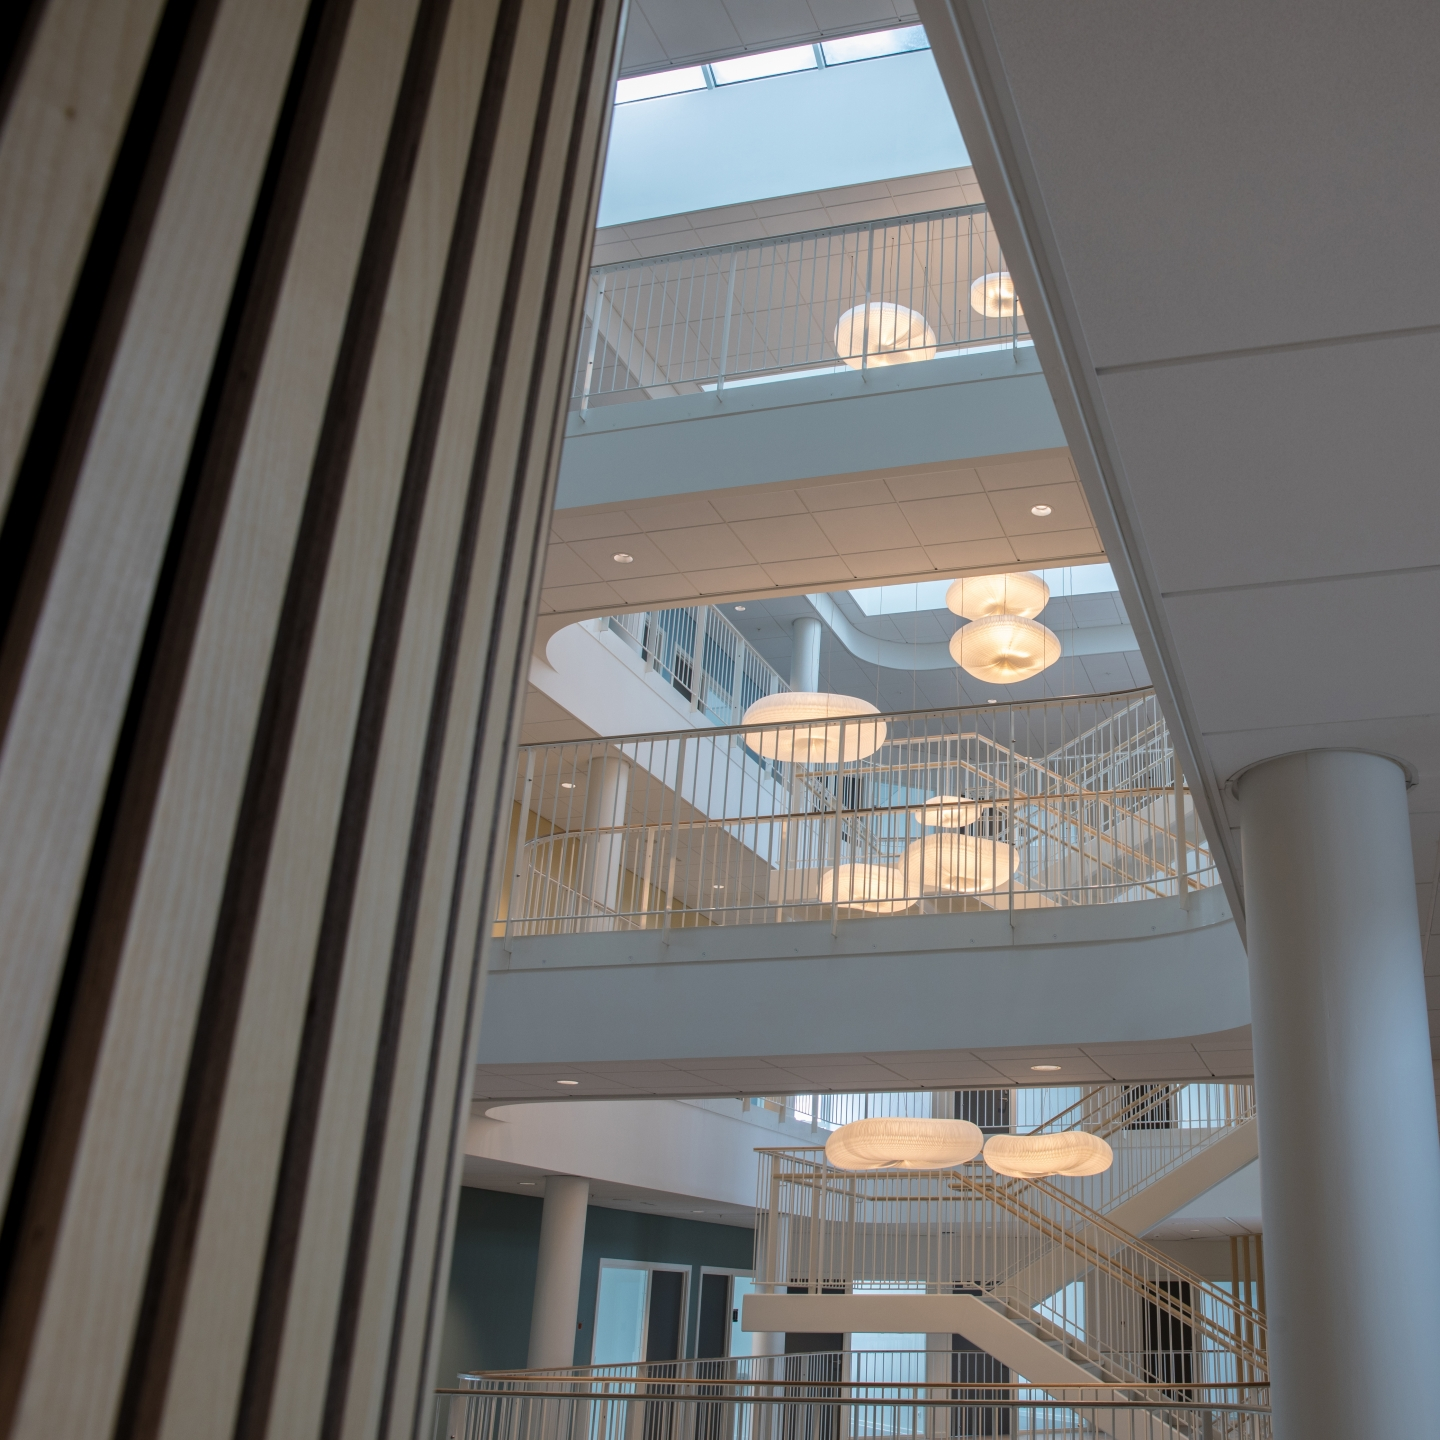 A distance view of cloud softlight pendants hanging in an atrium.